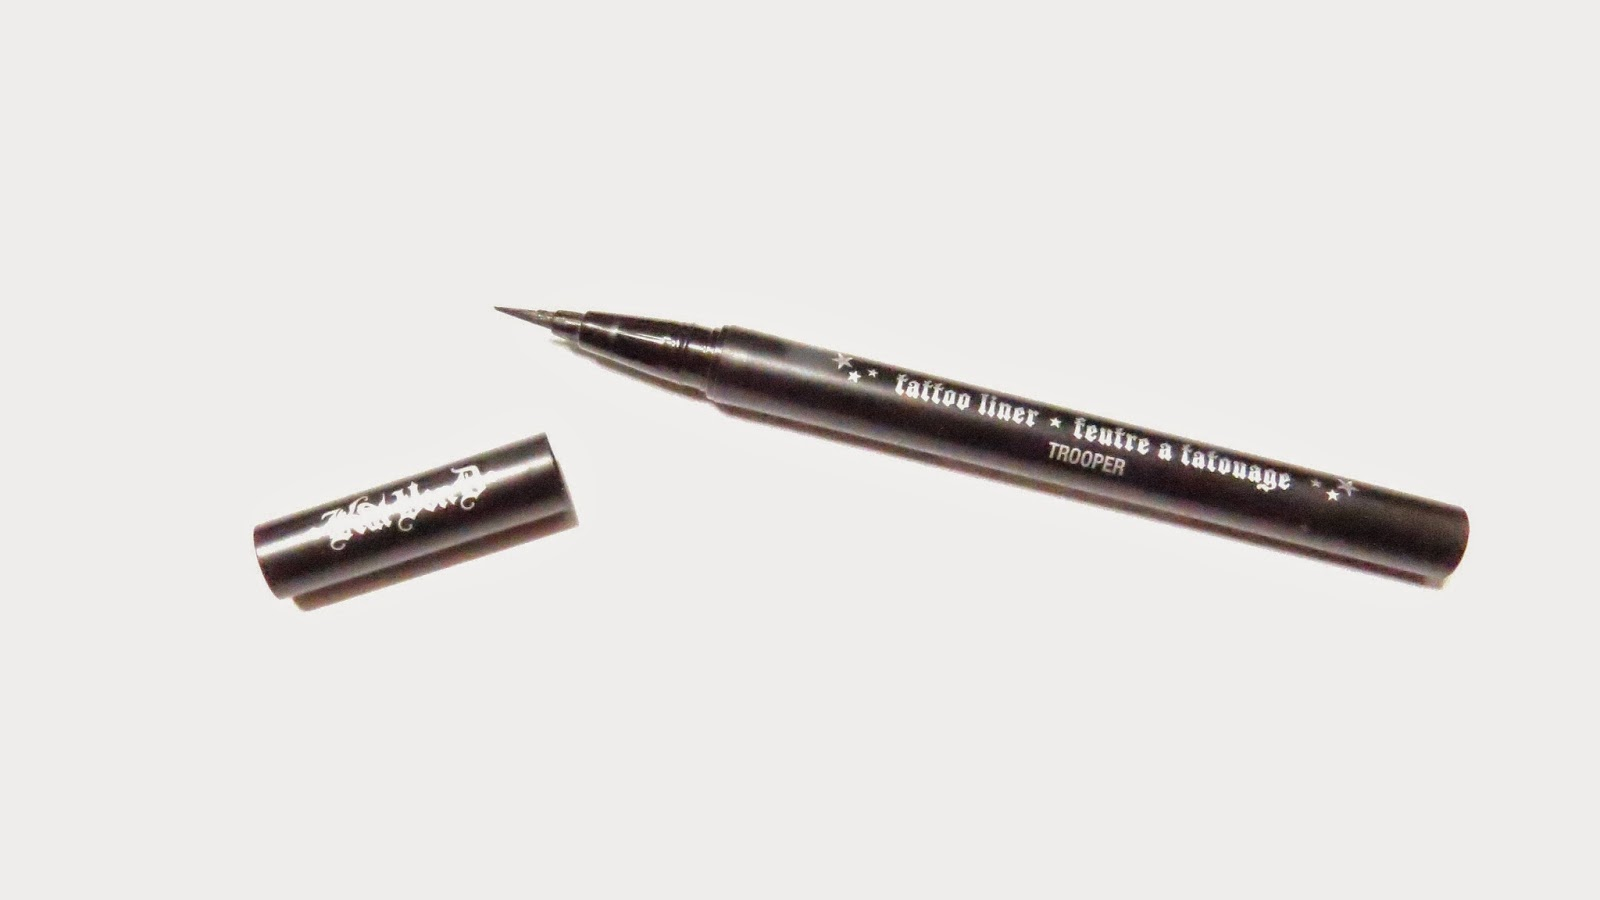 Kat Von D Tattoo Liner Brush Tip